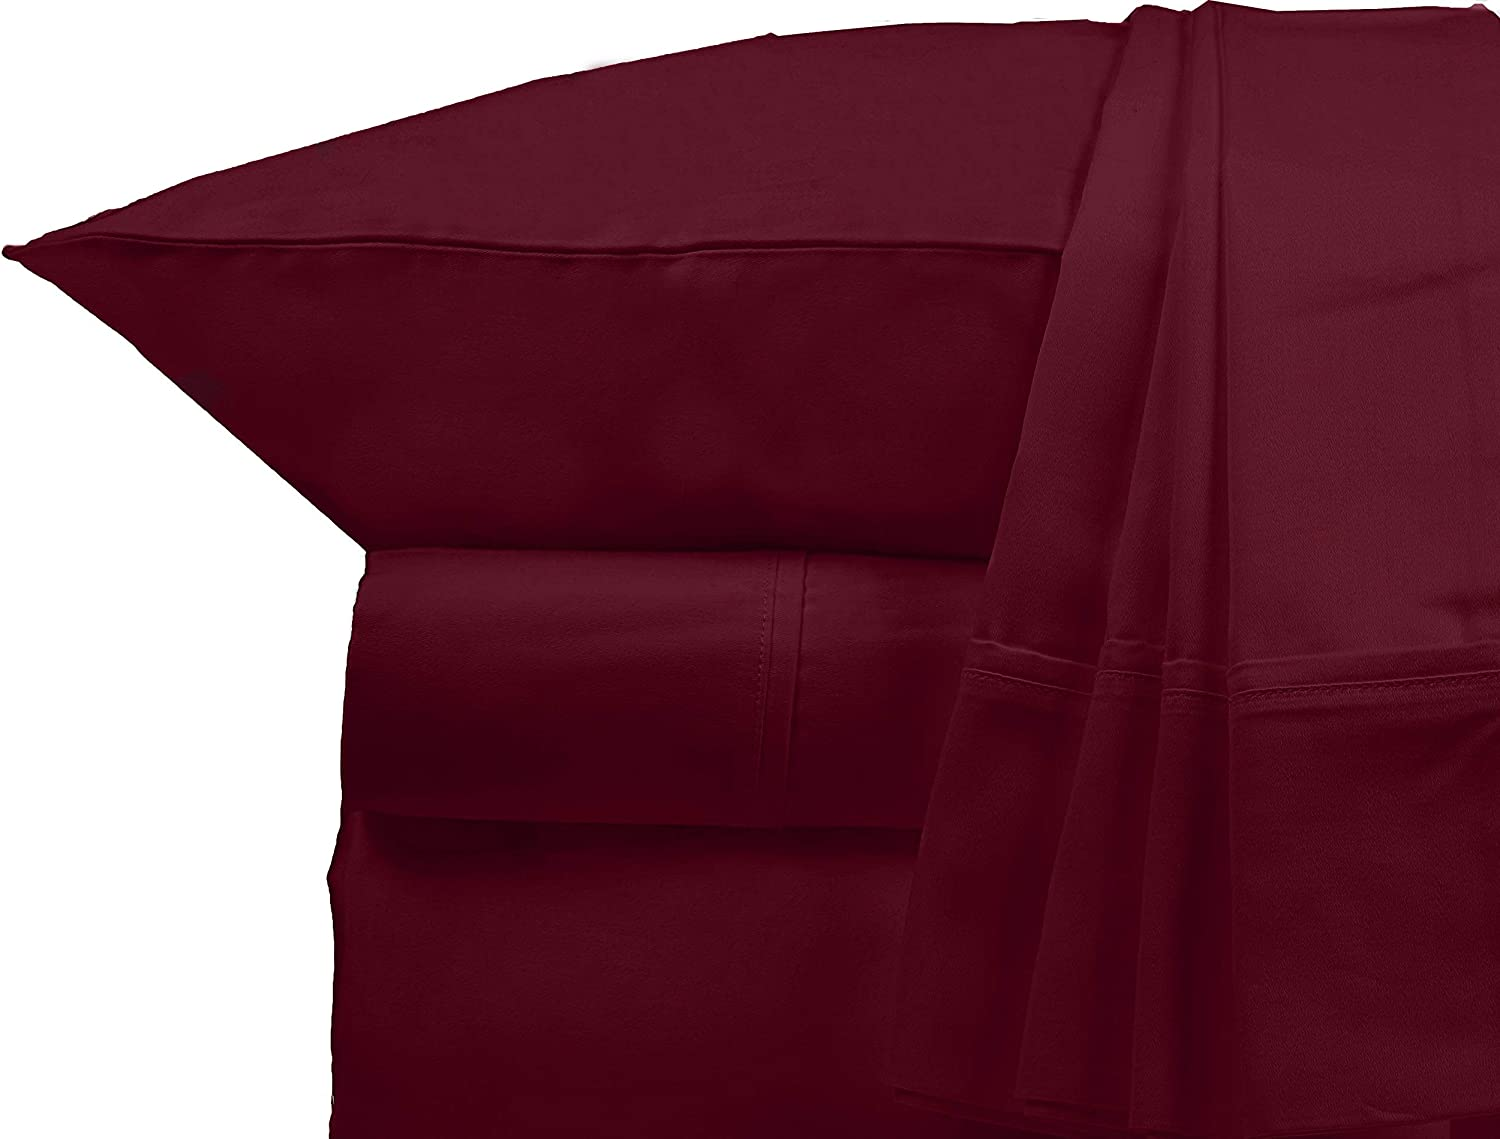 """Bluemoon Homes Luxurious 1000 Thread Count Italian Finish 100% Egyptian Cotton 4-Piece Bed Sheet Set, Fitss Mattress Up to 18"""" Deep Pocket, Solid Pattern. (Twin, Burgundy)"""